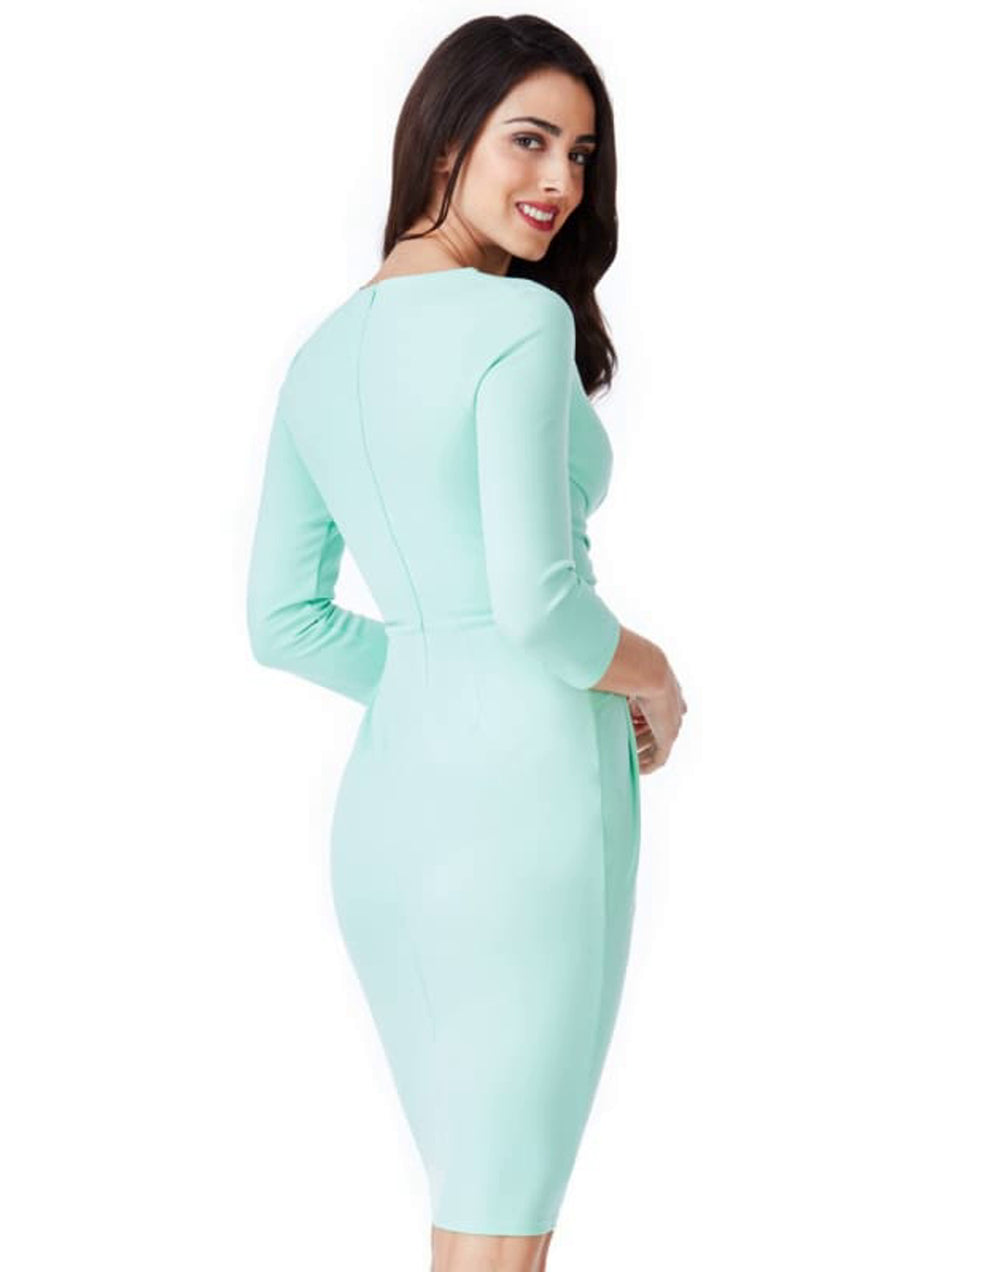 Fitted Pleated Mint Midi Dress - Dresses bodycon dress bodycon dresses bodycon midi dresses citygoddess cocktail dress